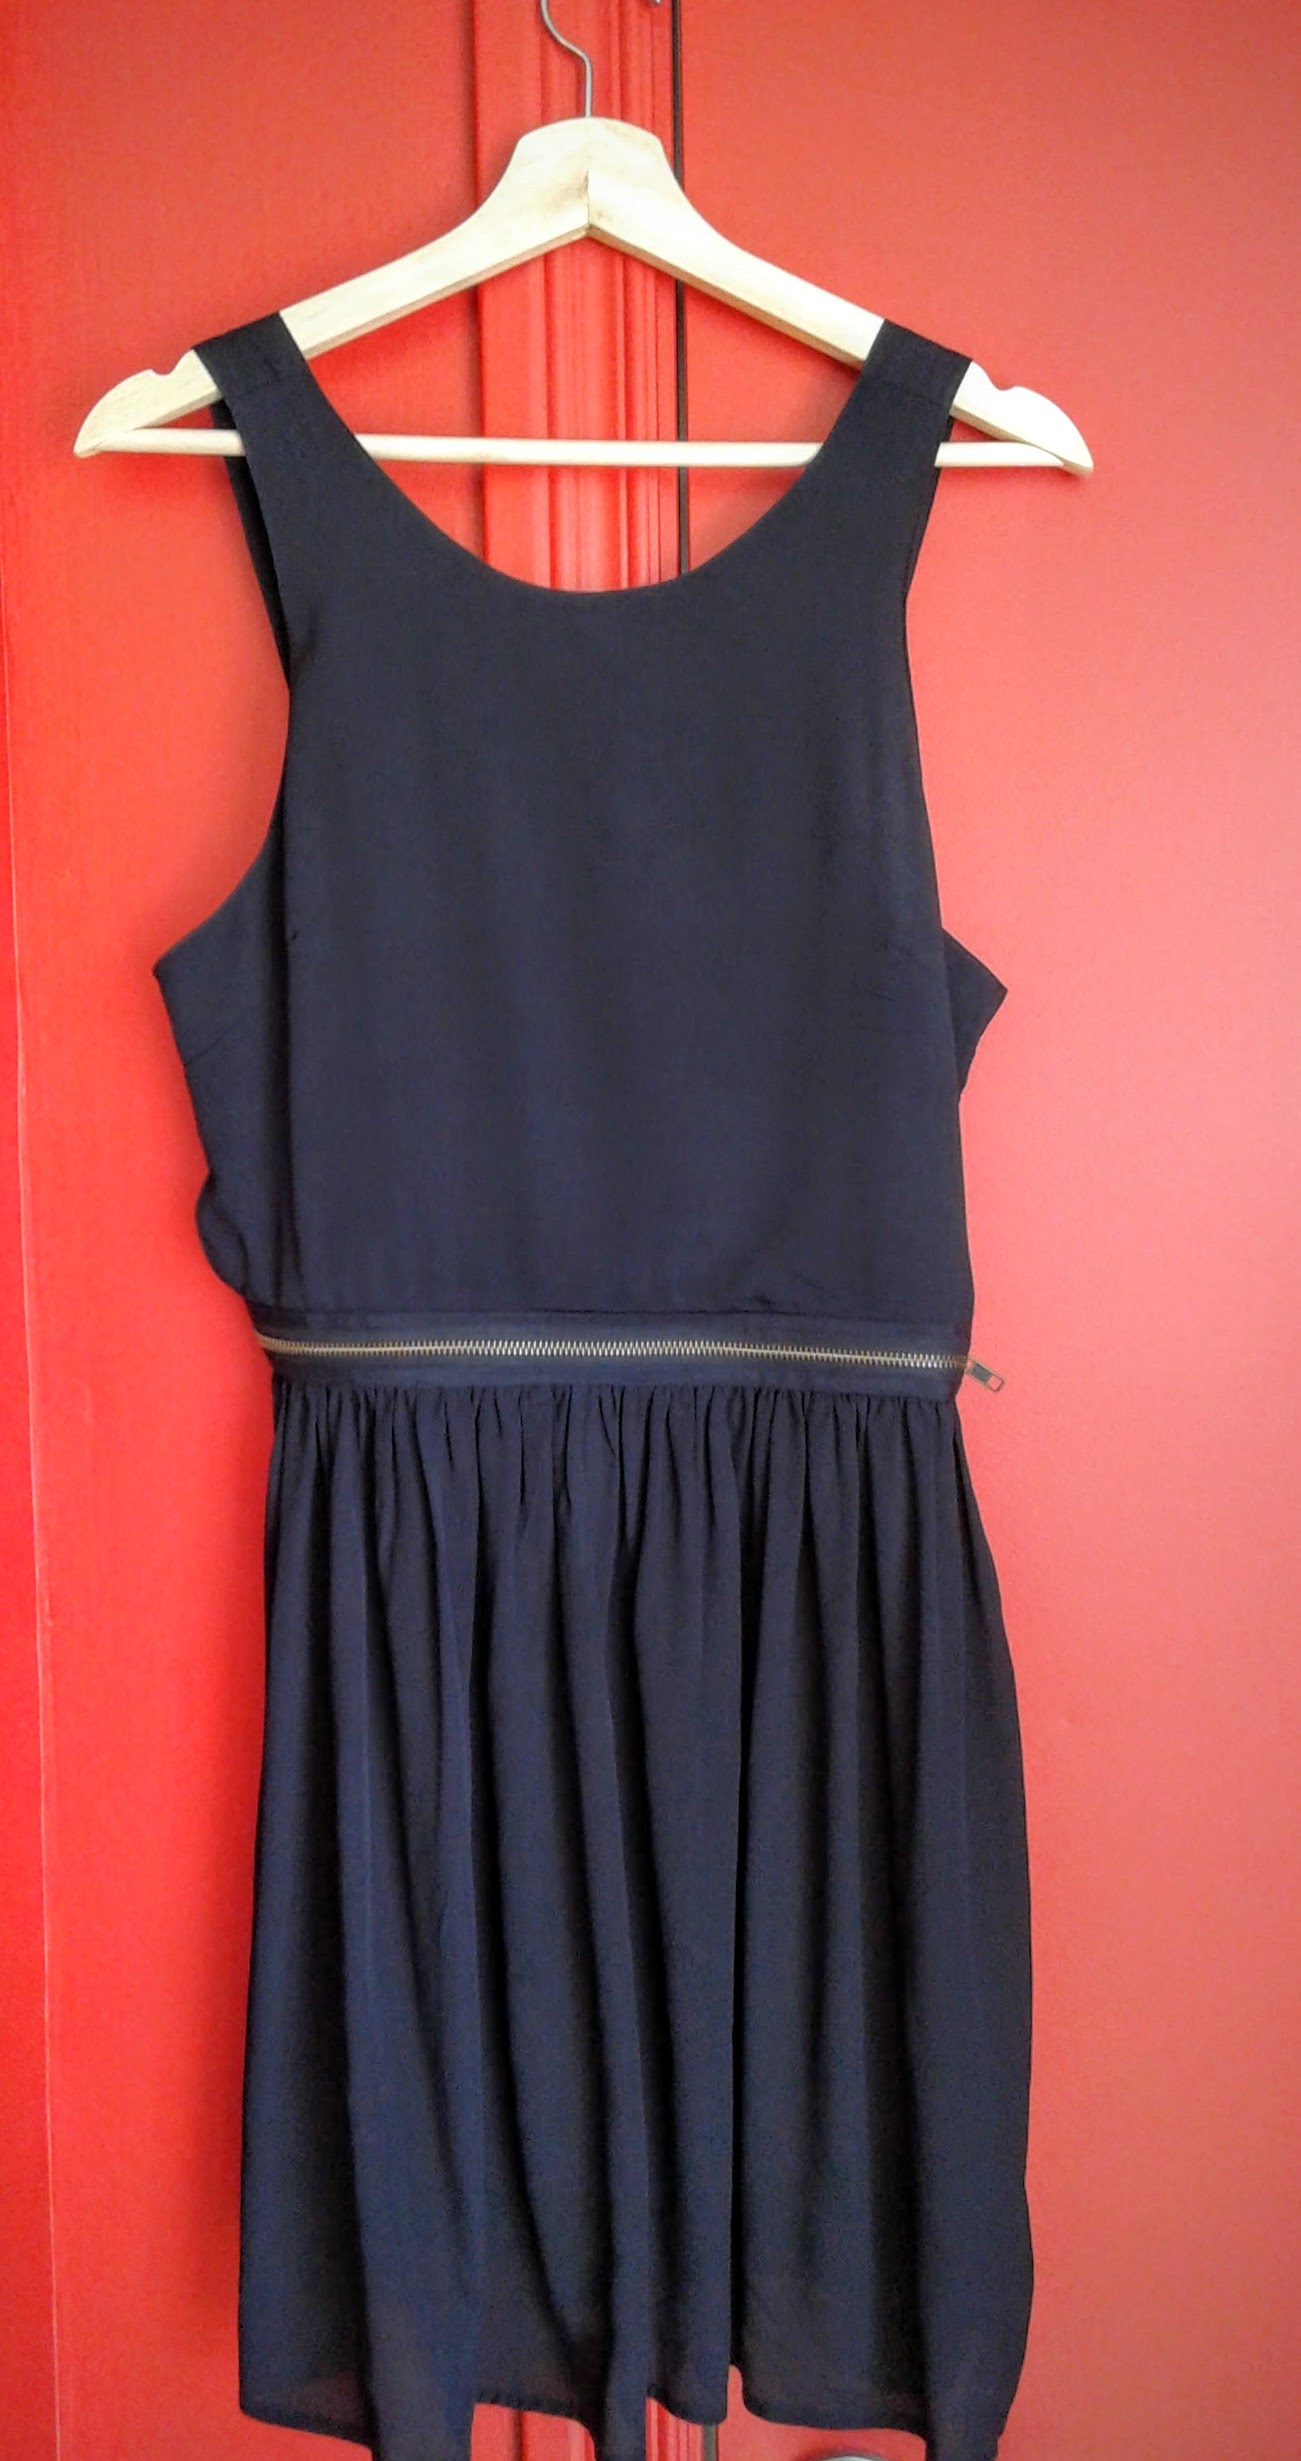 Topshop dress; Size 6, $30